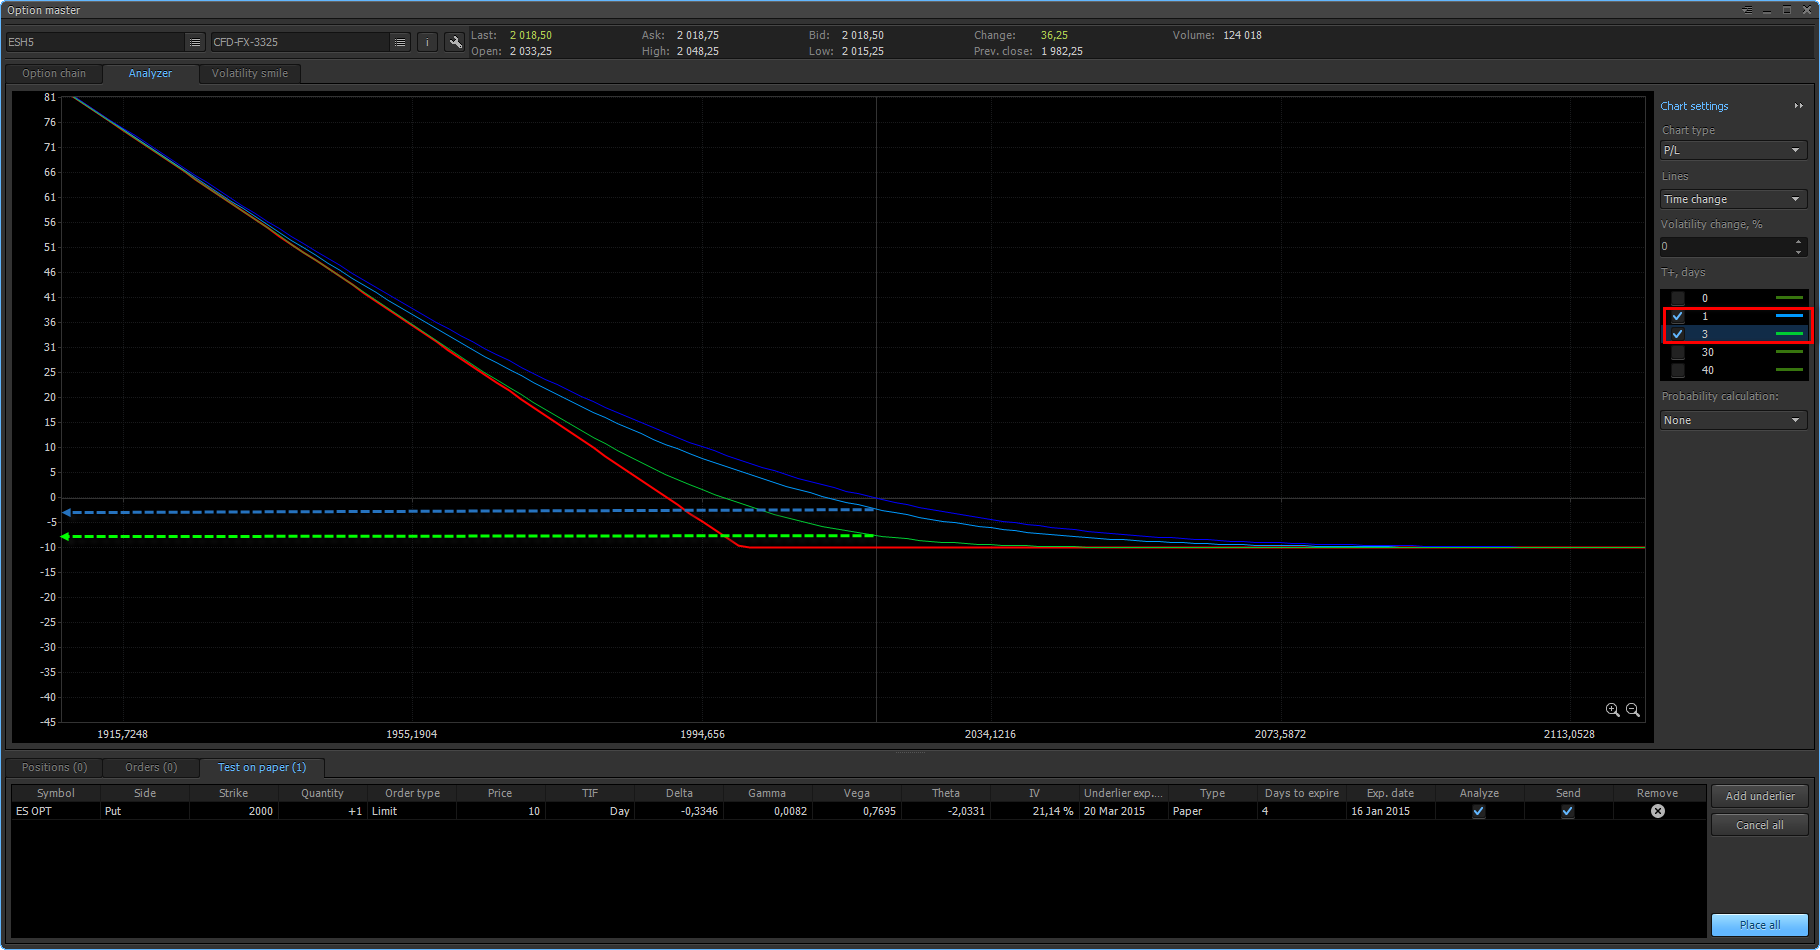 Two additional lines are shown on the position profile which reflects the theoretical option cost at invariable volatility